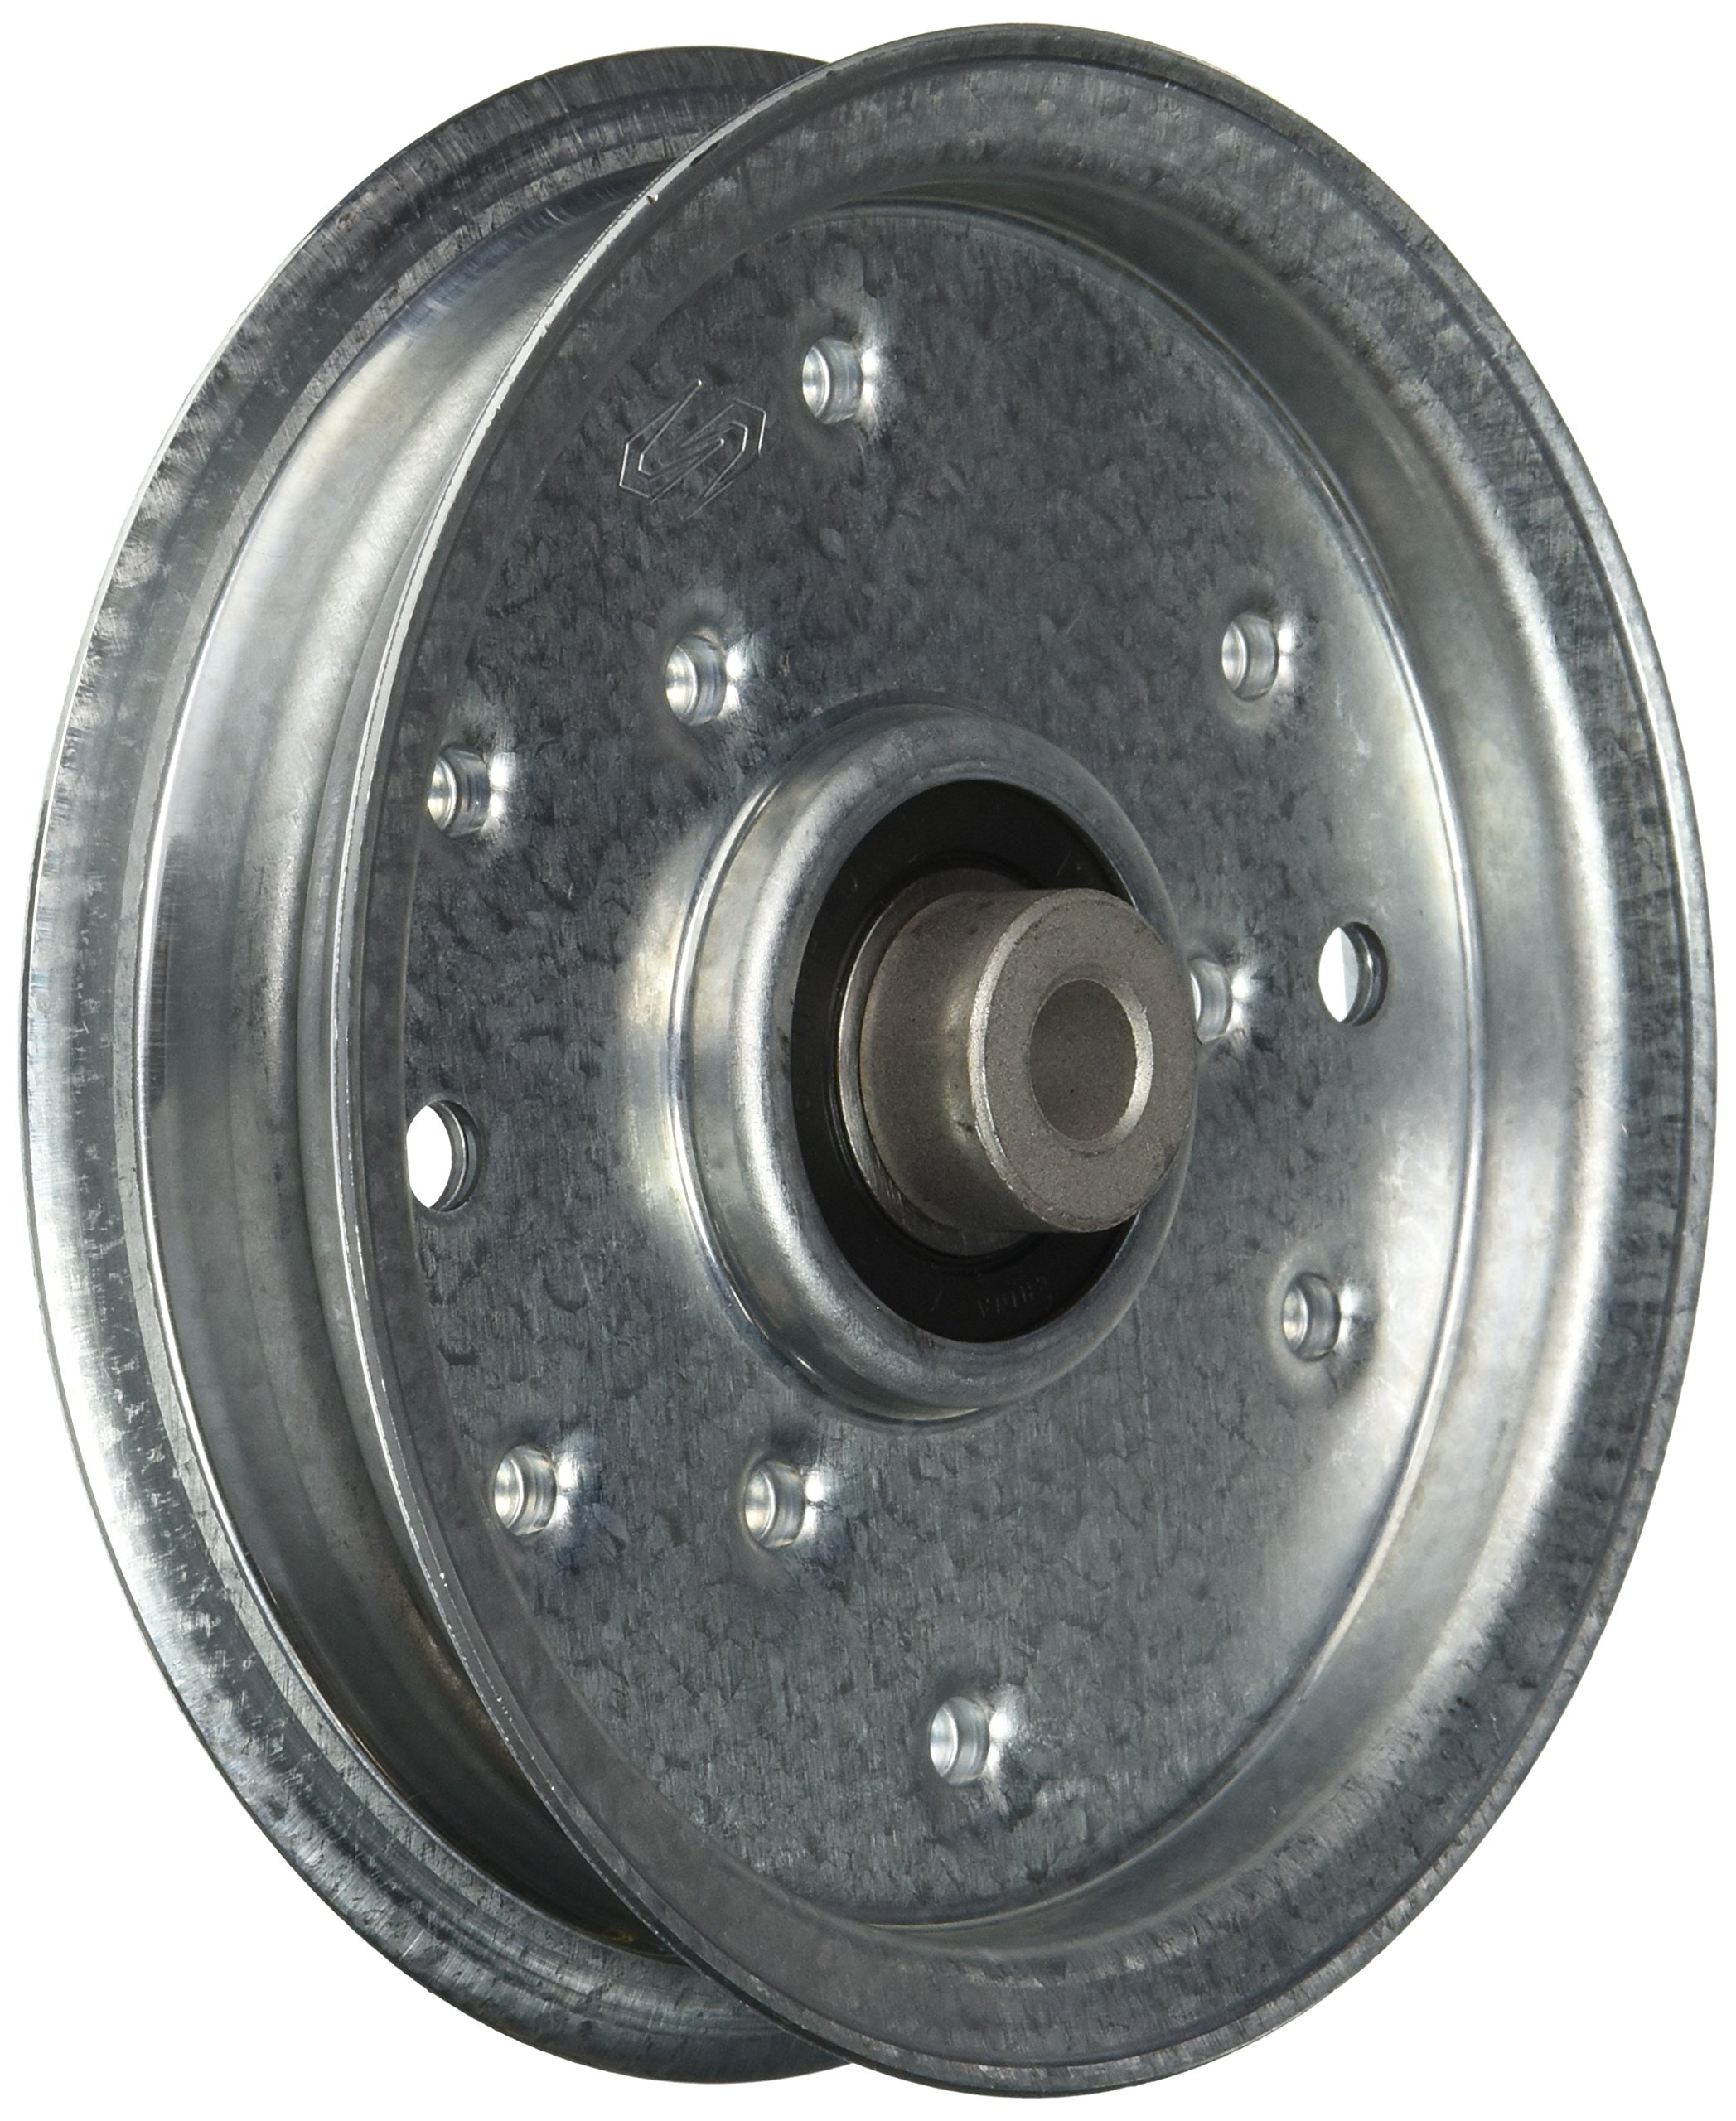 MaxPower 12675 Flat Idler Pulley Replaces MTD/Cub Cadet 753-08171, 75308171, 756-04129, 75604129B, 75604129C, 956-04129